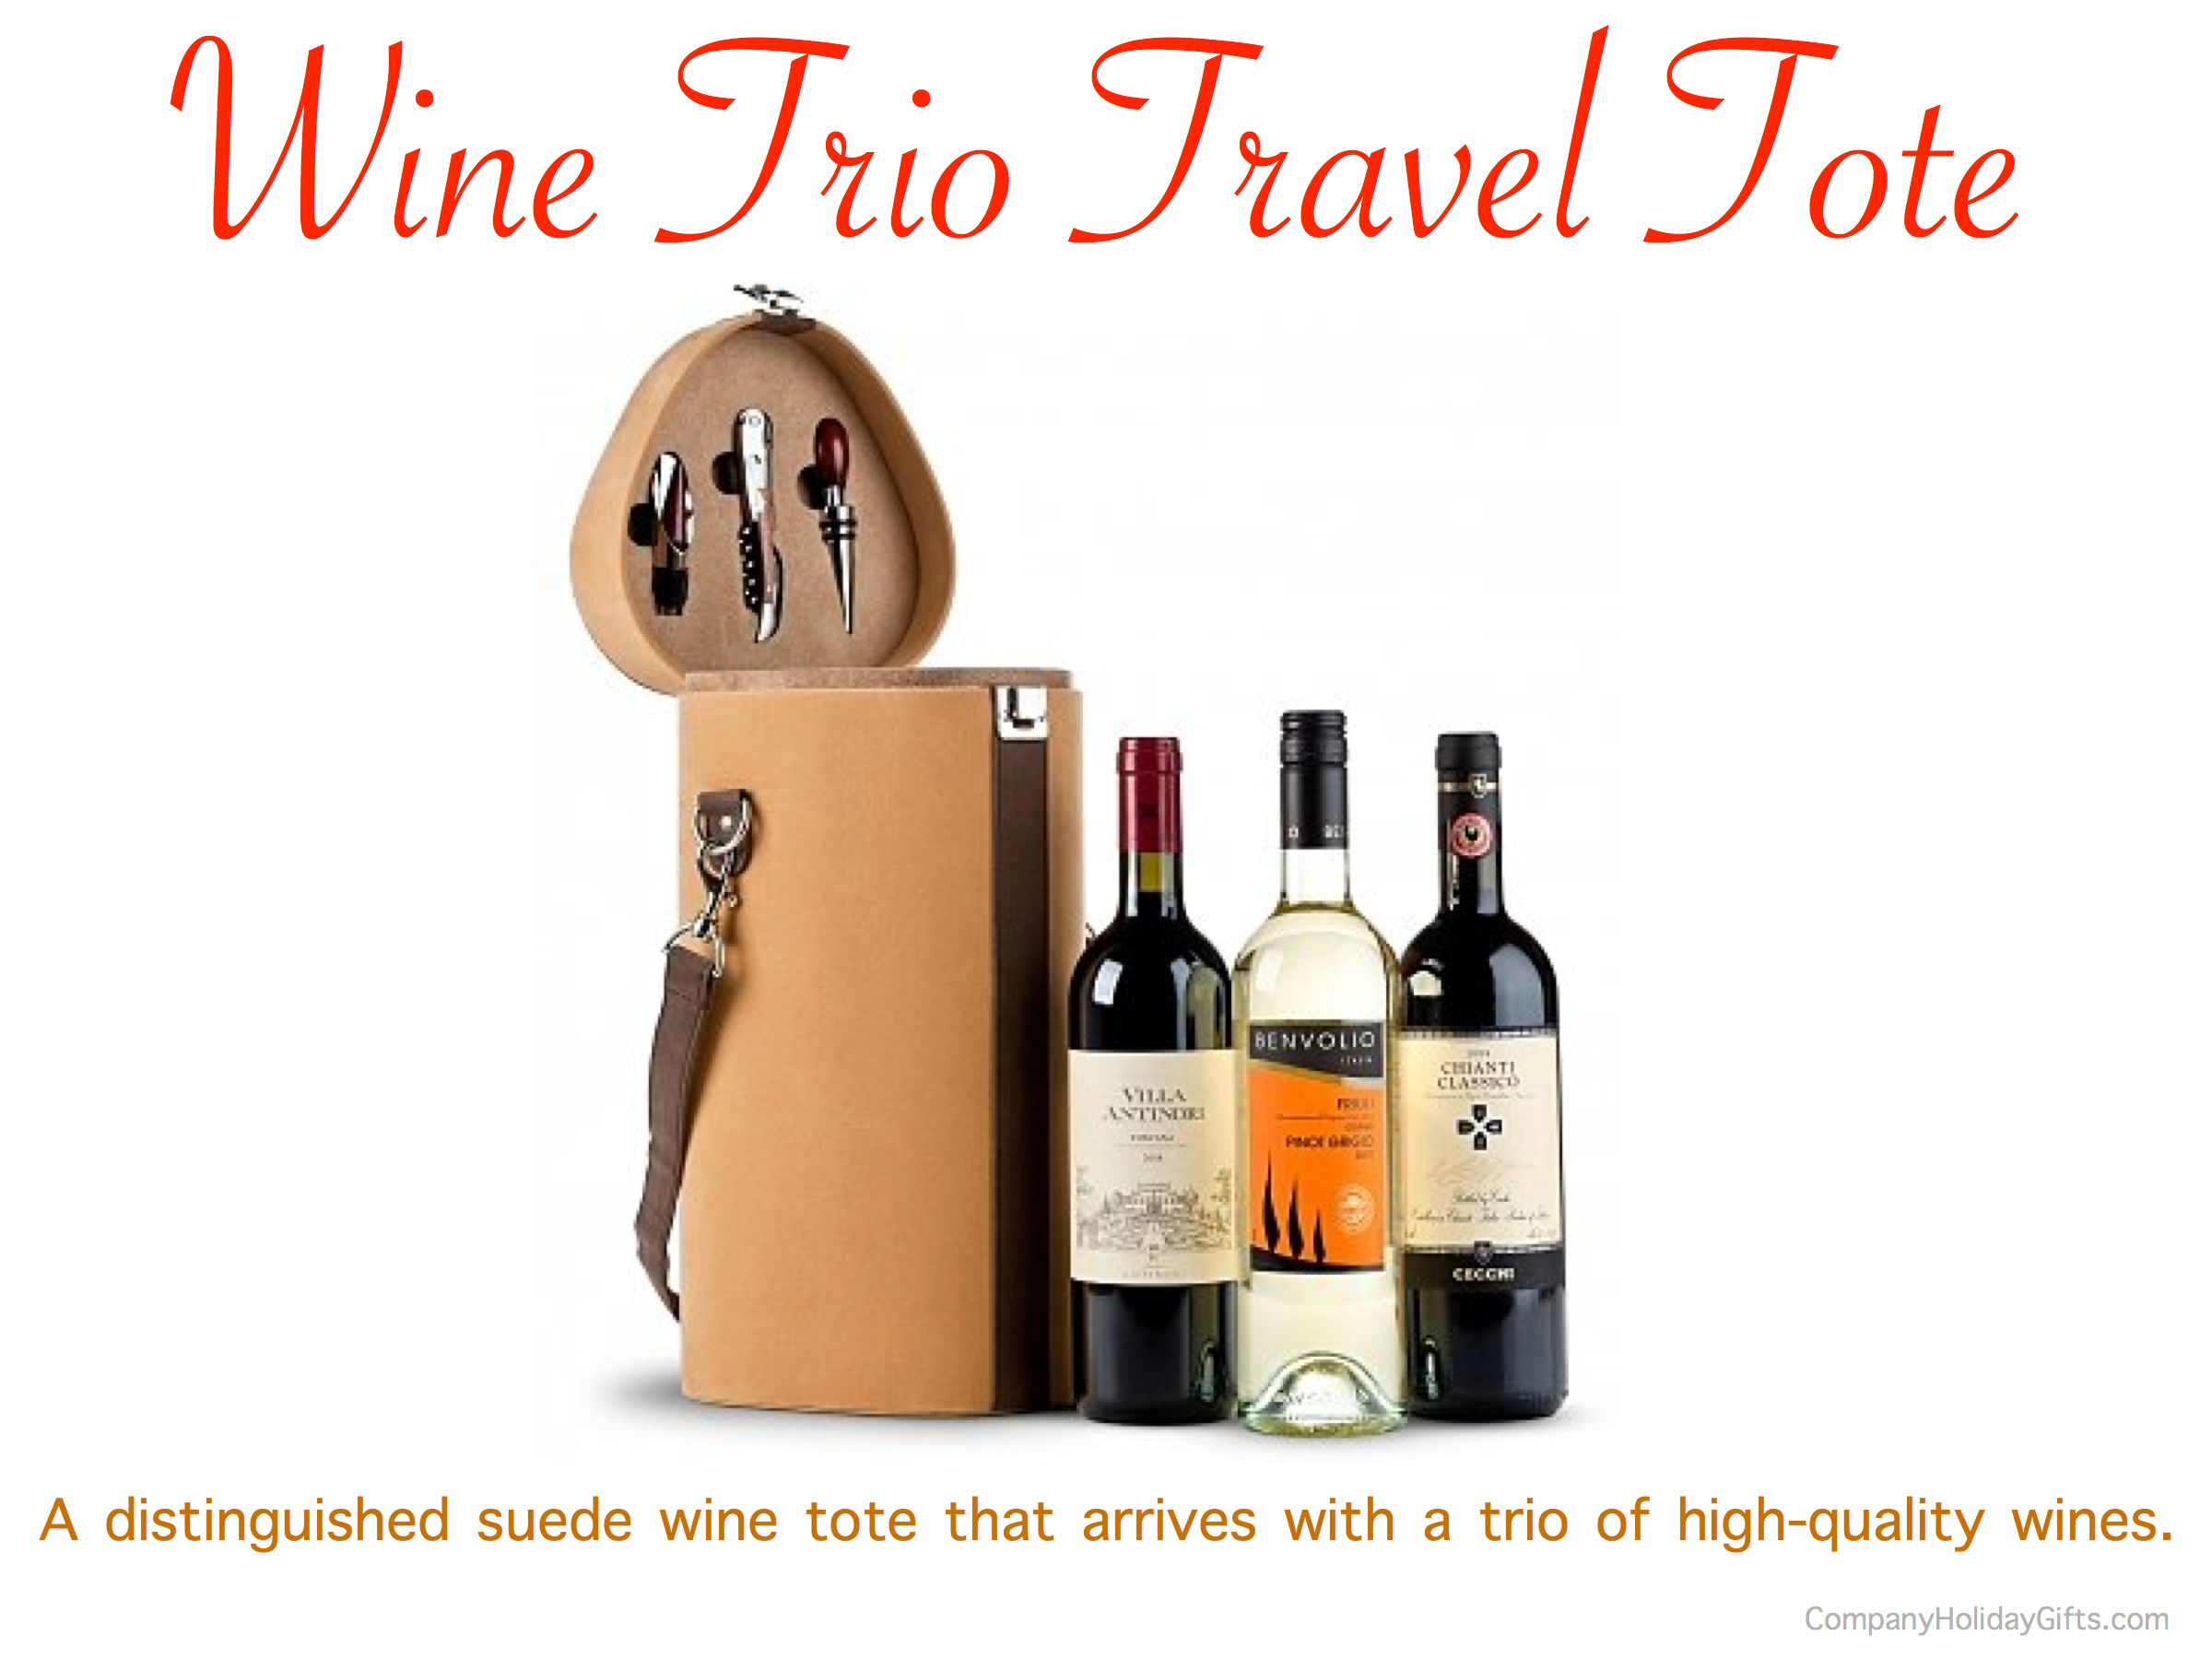 Wine Trio Travel Tote Holiday Gift, 20 Best Realtor Holiday Gift Ideas Under $100.00